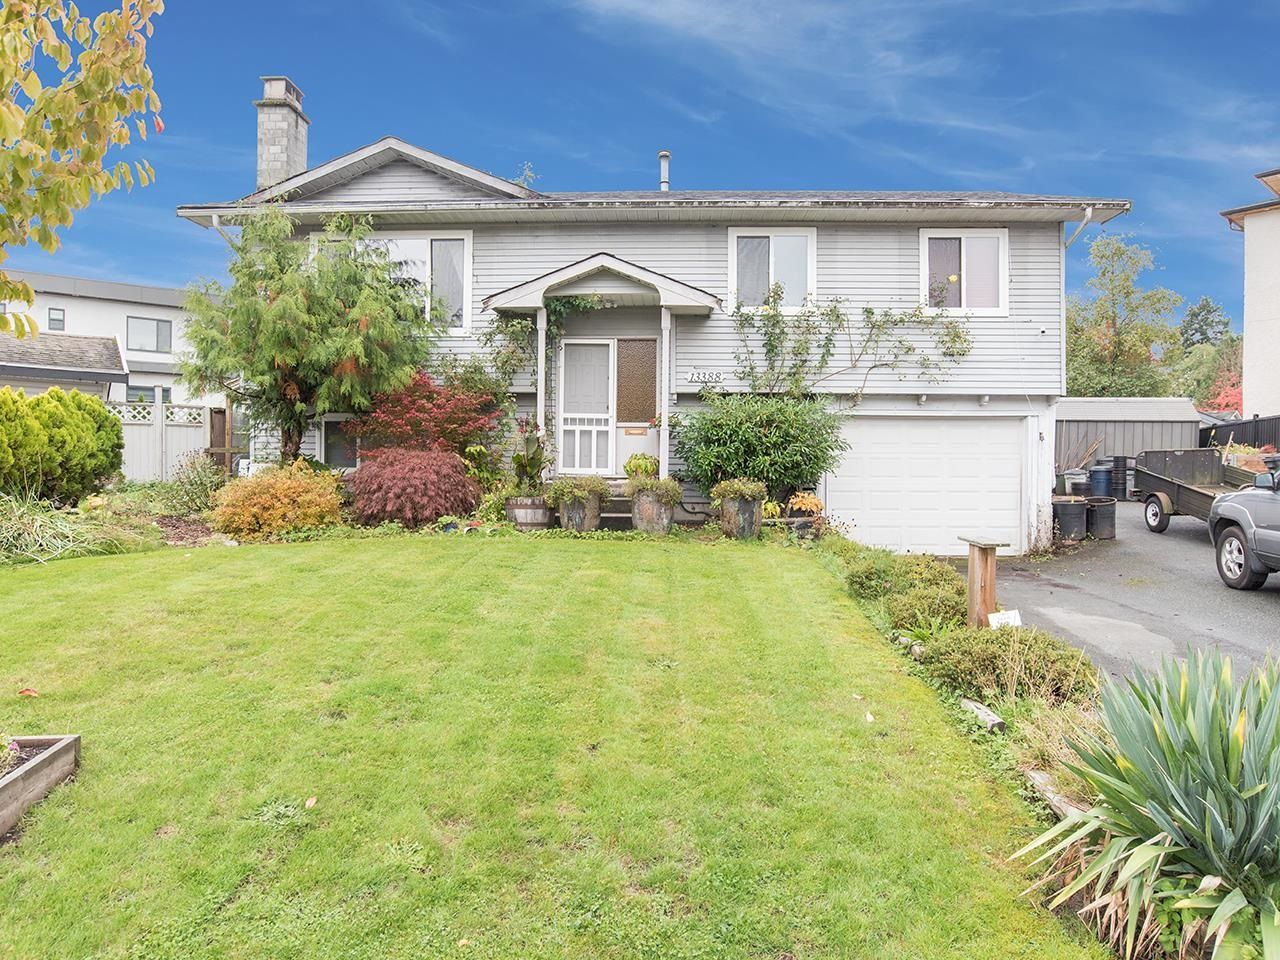 Main Photo: 13388 CYPRESS Place in Surrey: Queen Mary Park Surrey House for sale : MLS®# R2624139